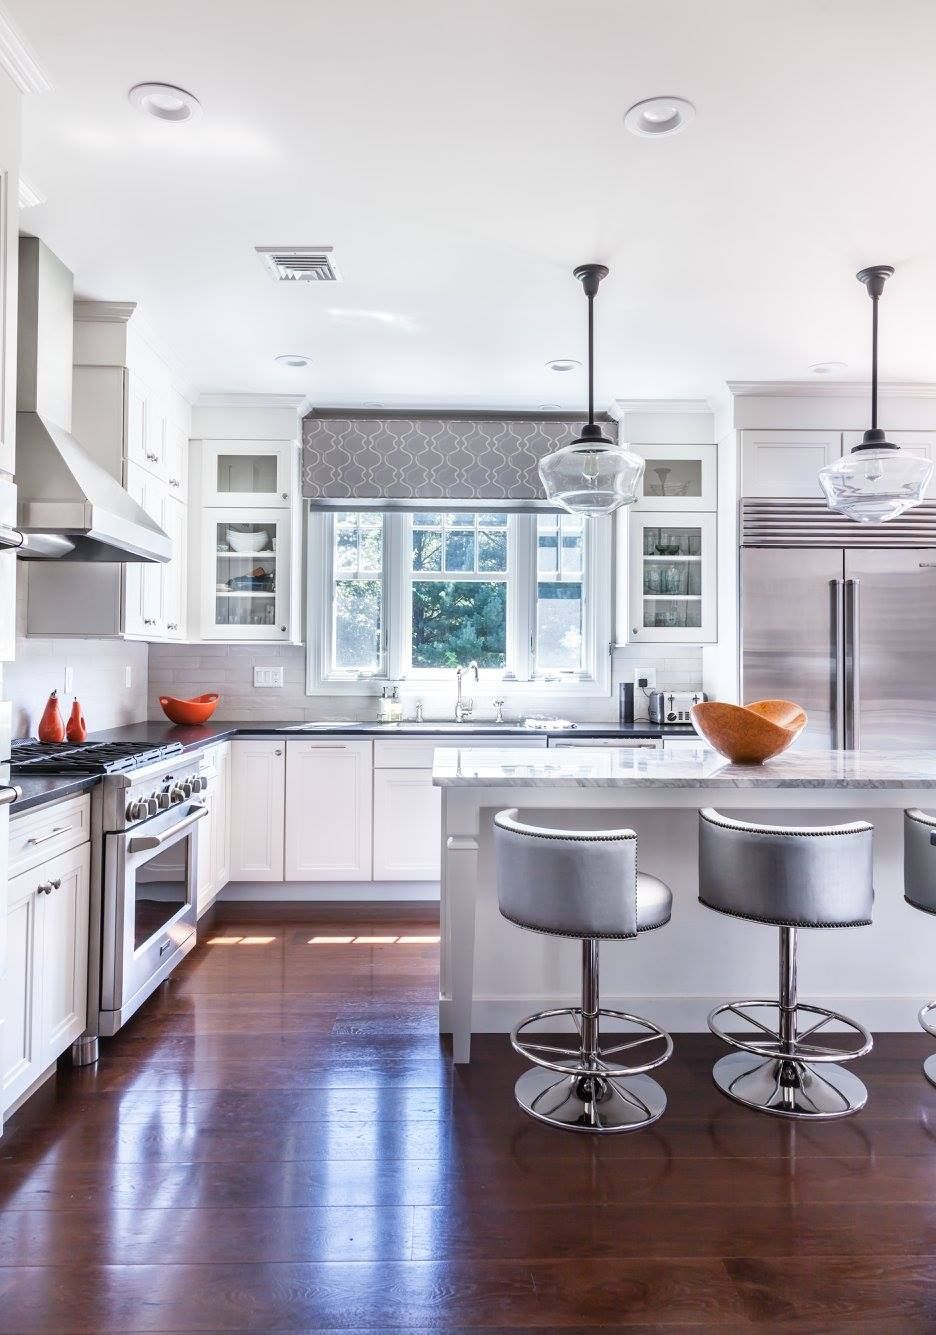 White Wonderful Kitchen Wayne NJ Home Remodeling Starts - Bathroom remodeling wayne nj